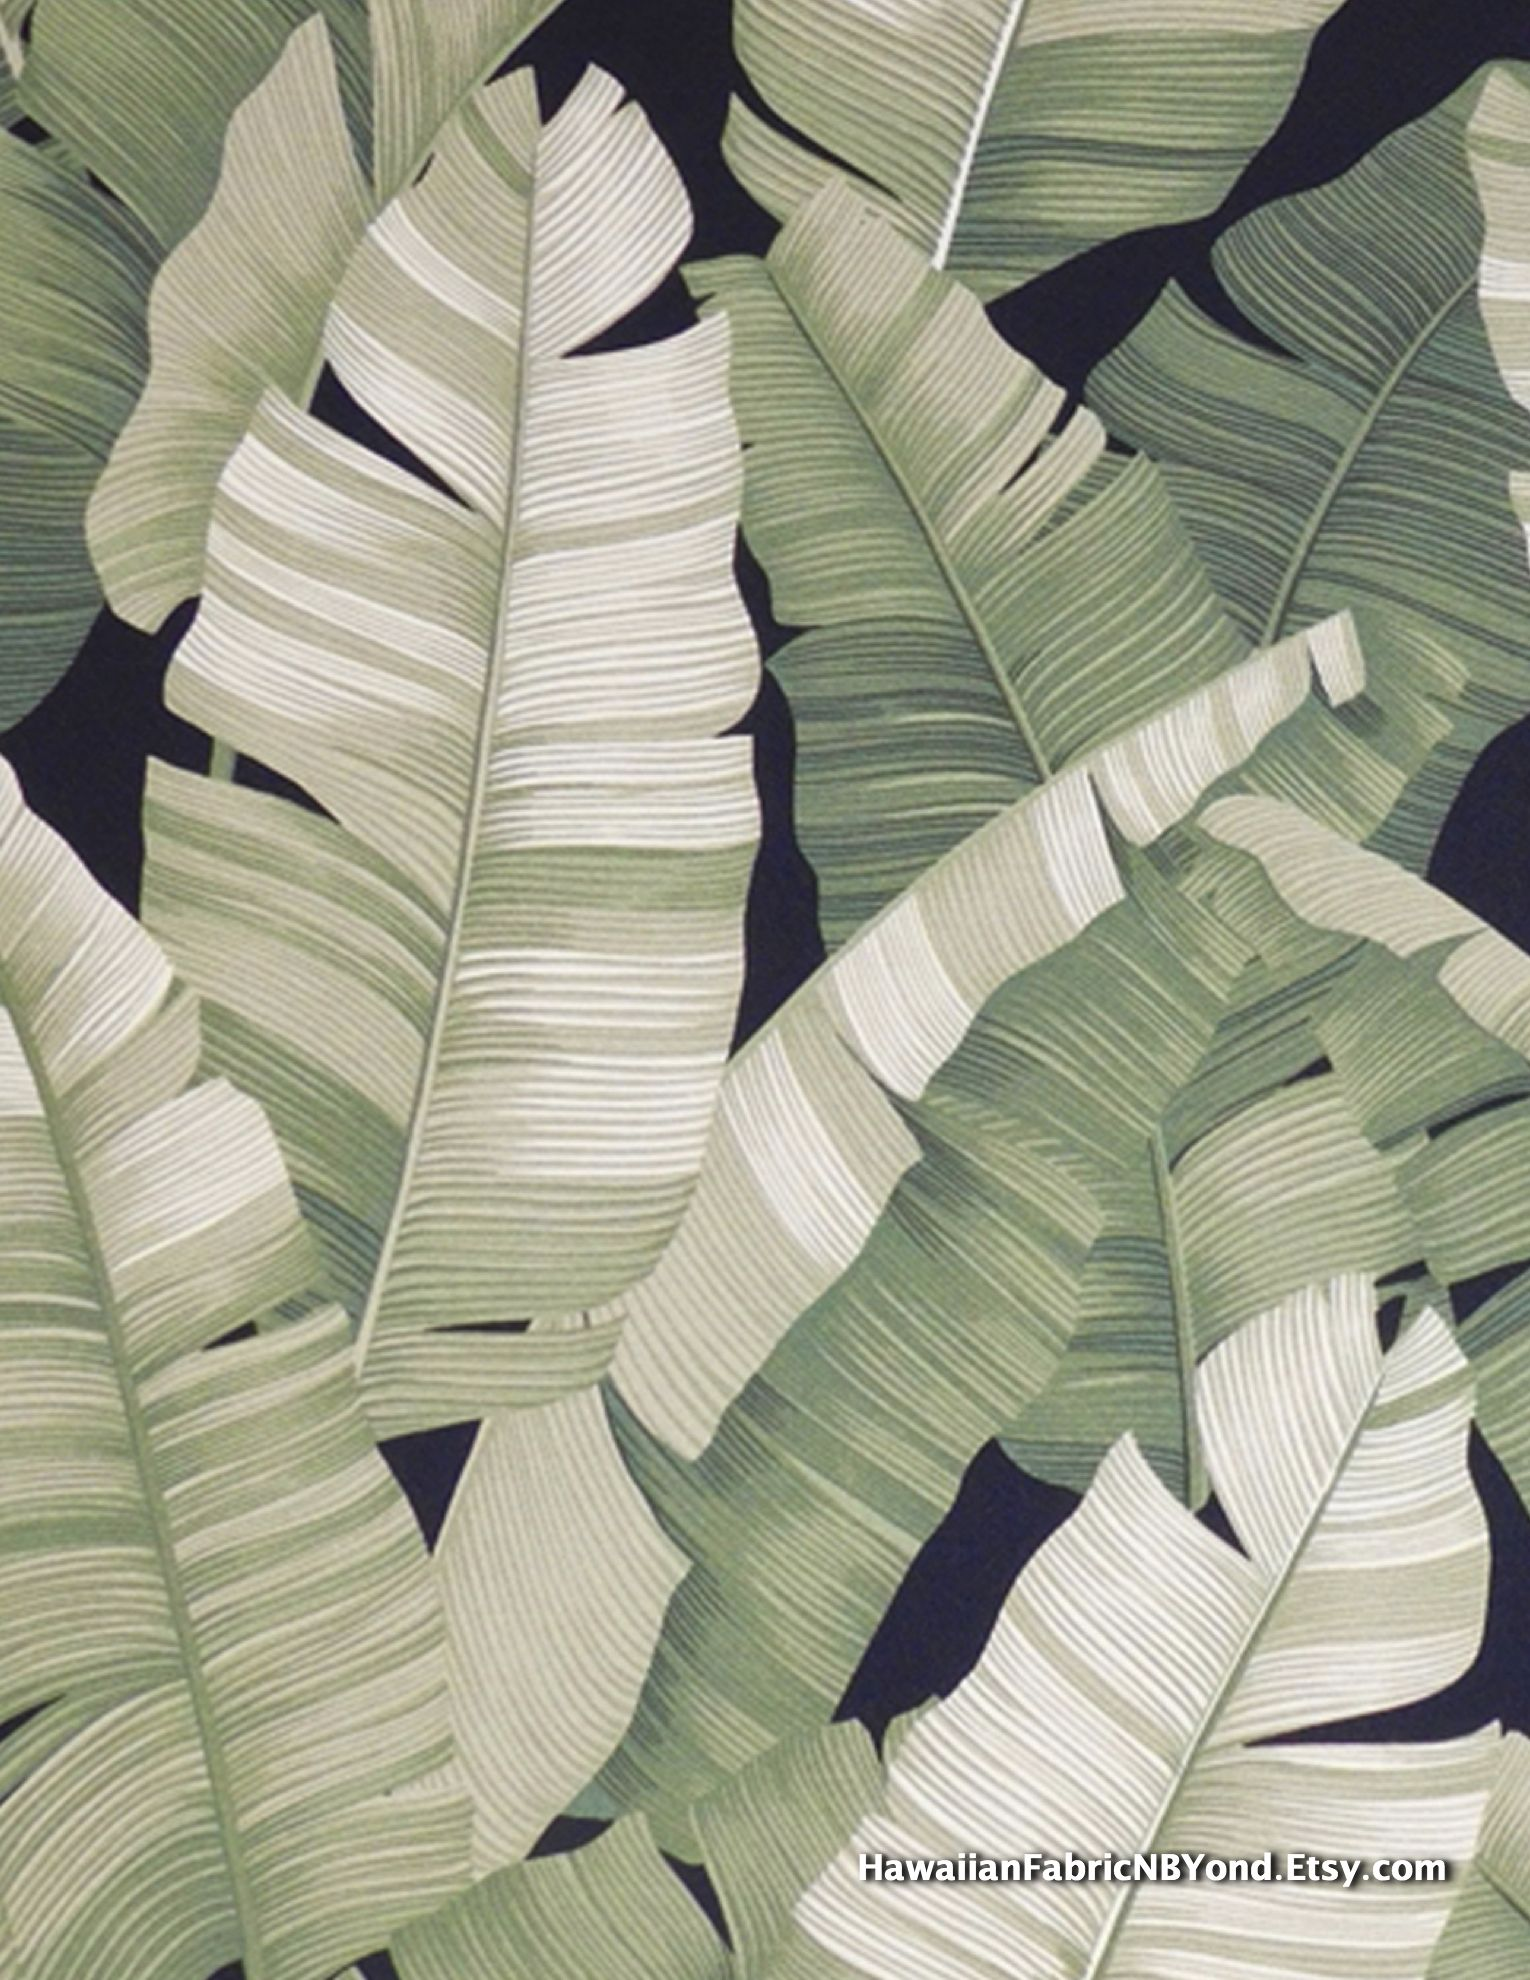 Upholstery Fabric Banana leaf tropical fabric for bedding and curtains By HawaiianFabricNBYond a shop on Etsy